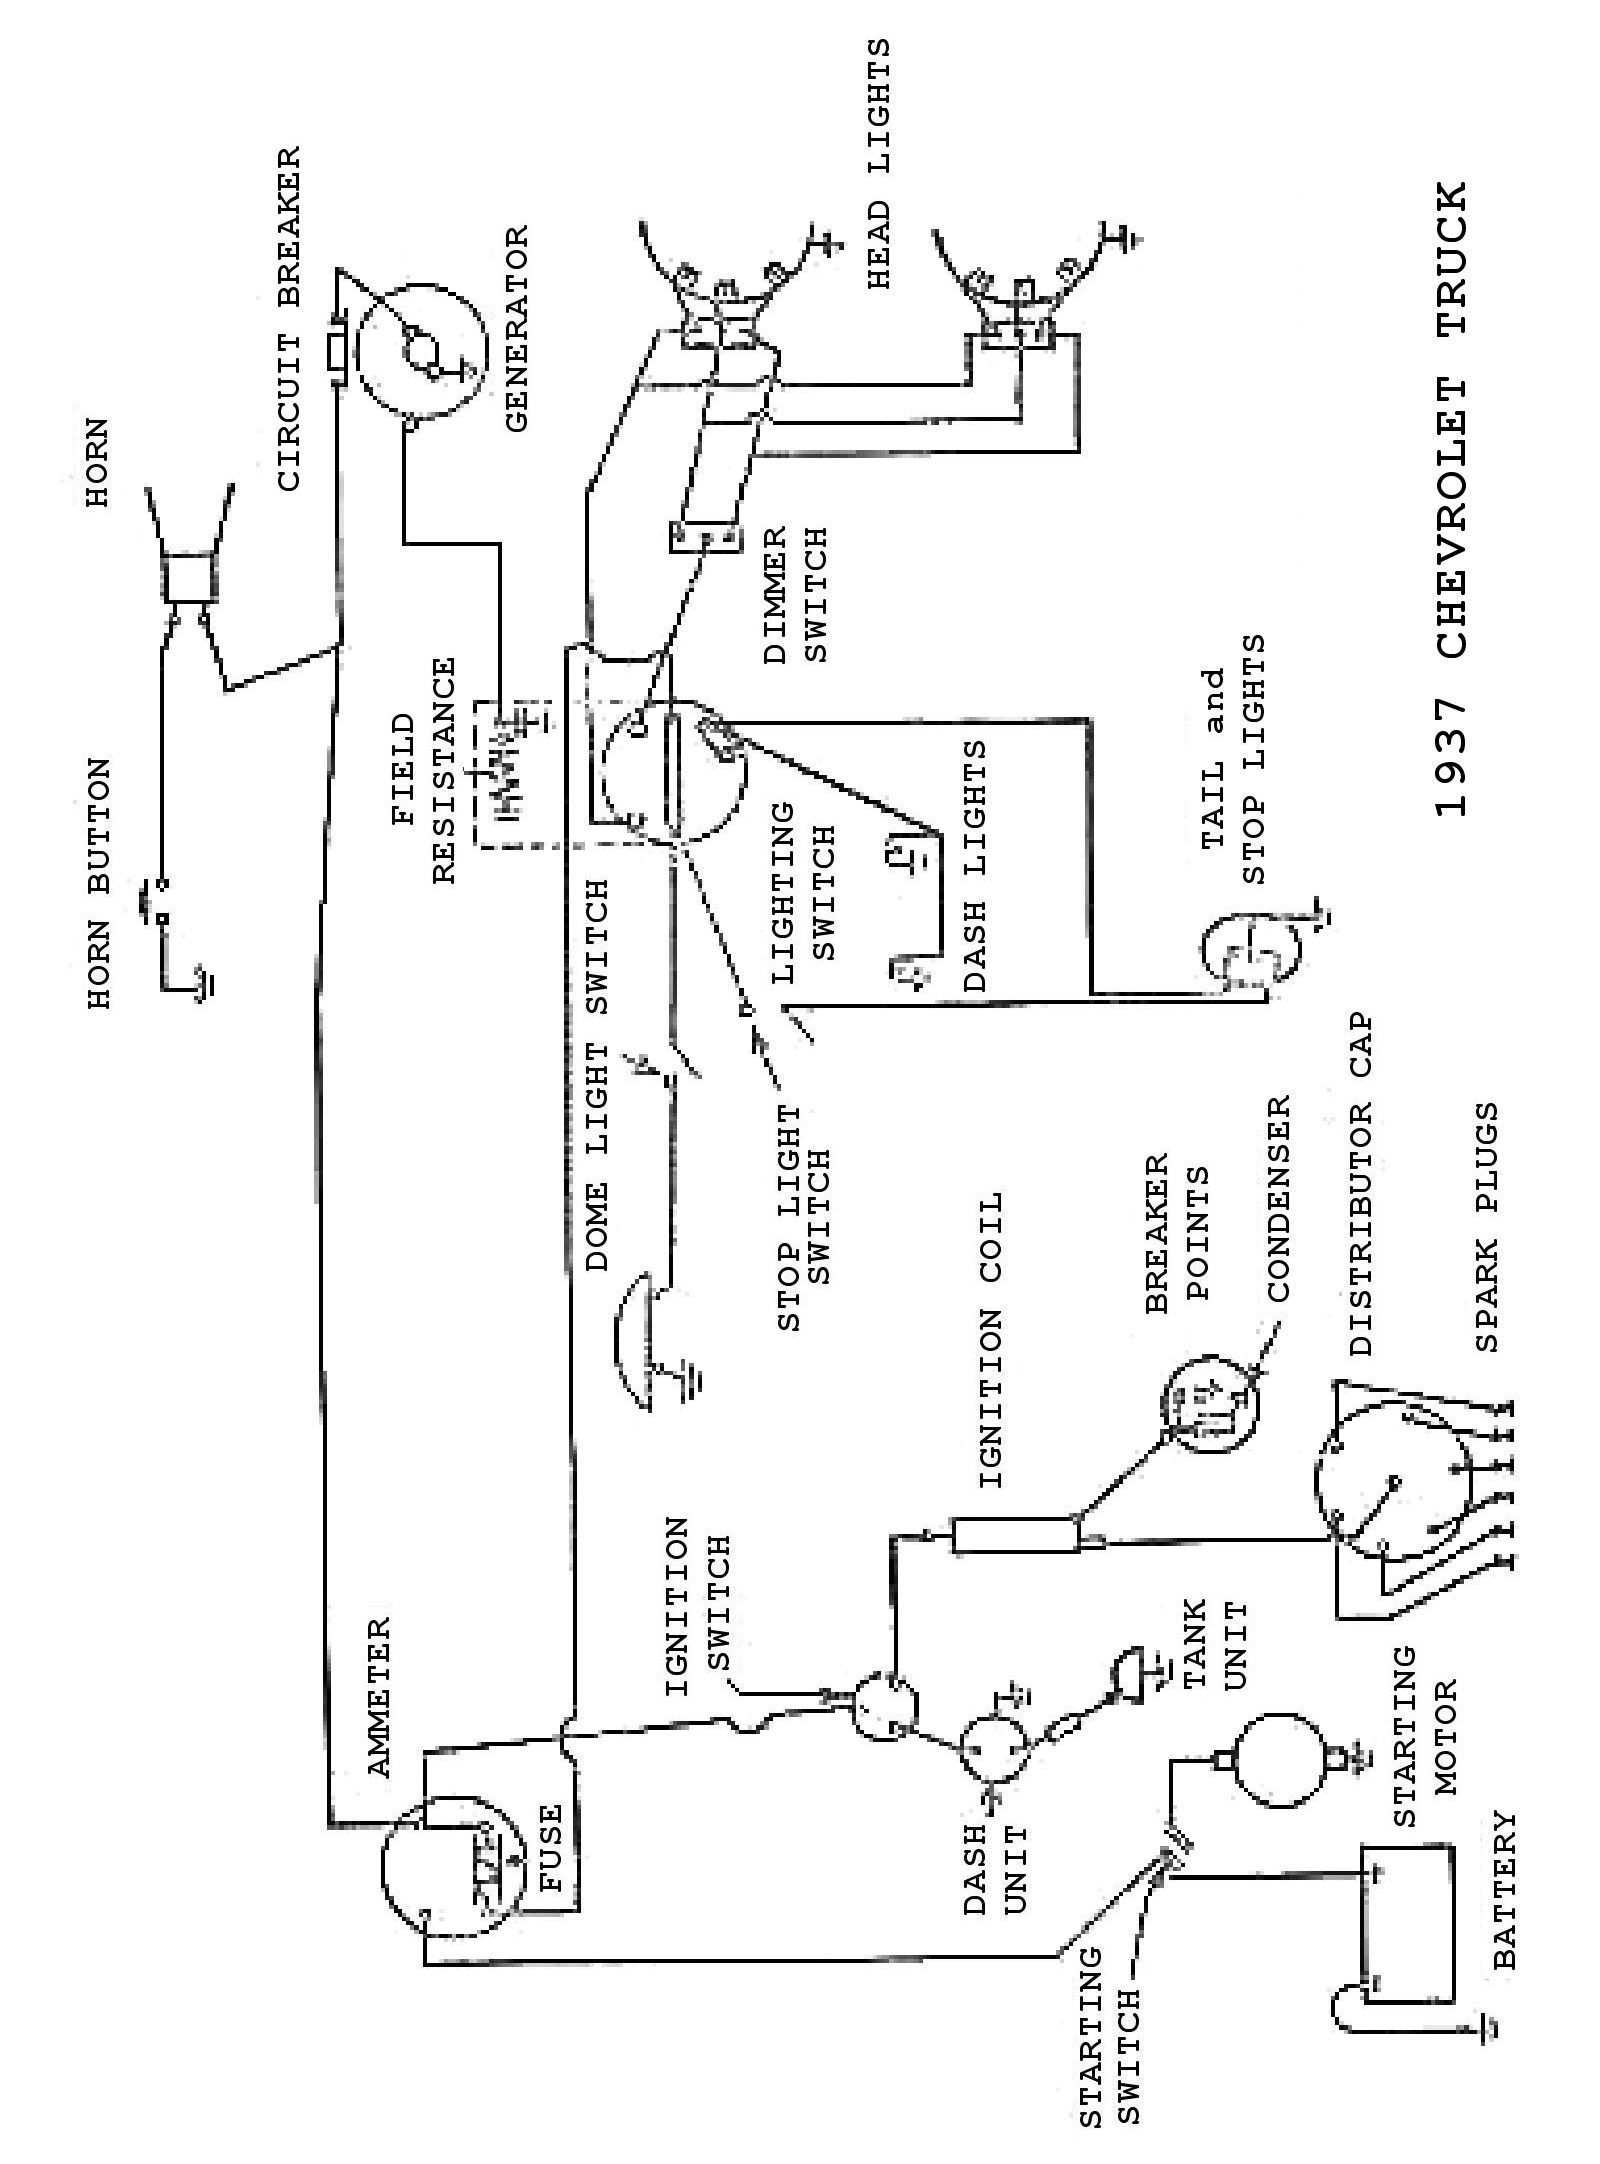 Chevy Silverado Brake Light Switch Wiring Diagram